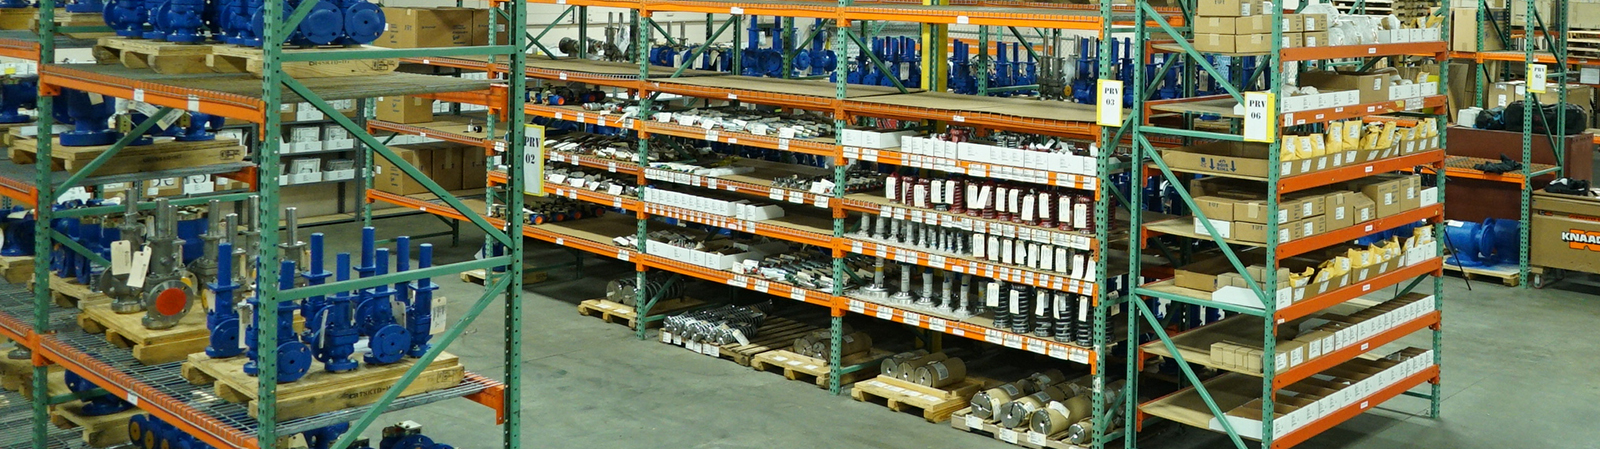 Product & Replacement Part Inventory